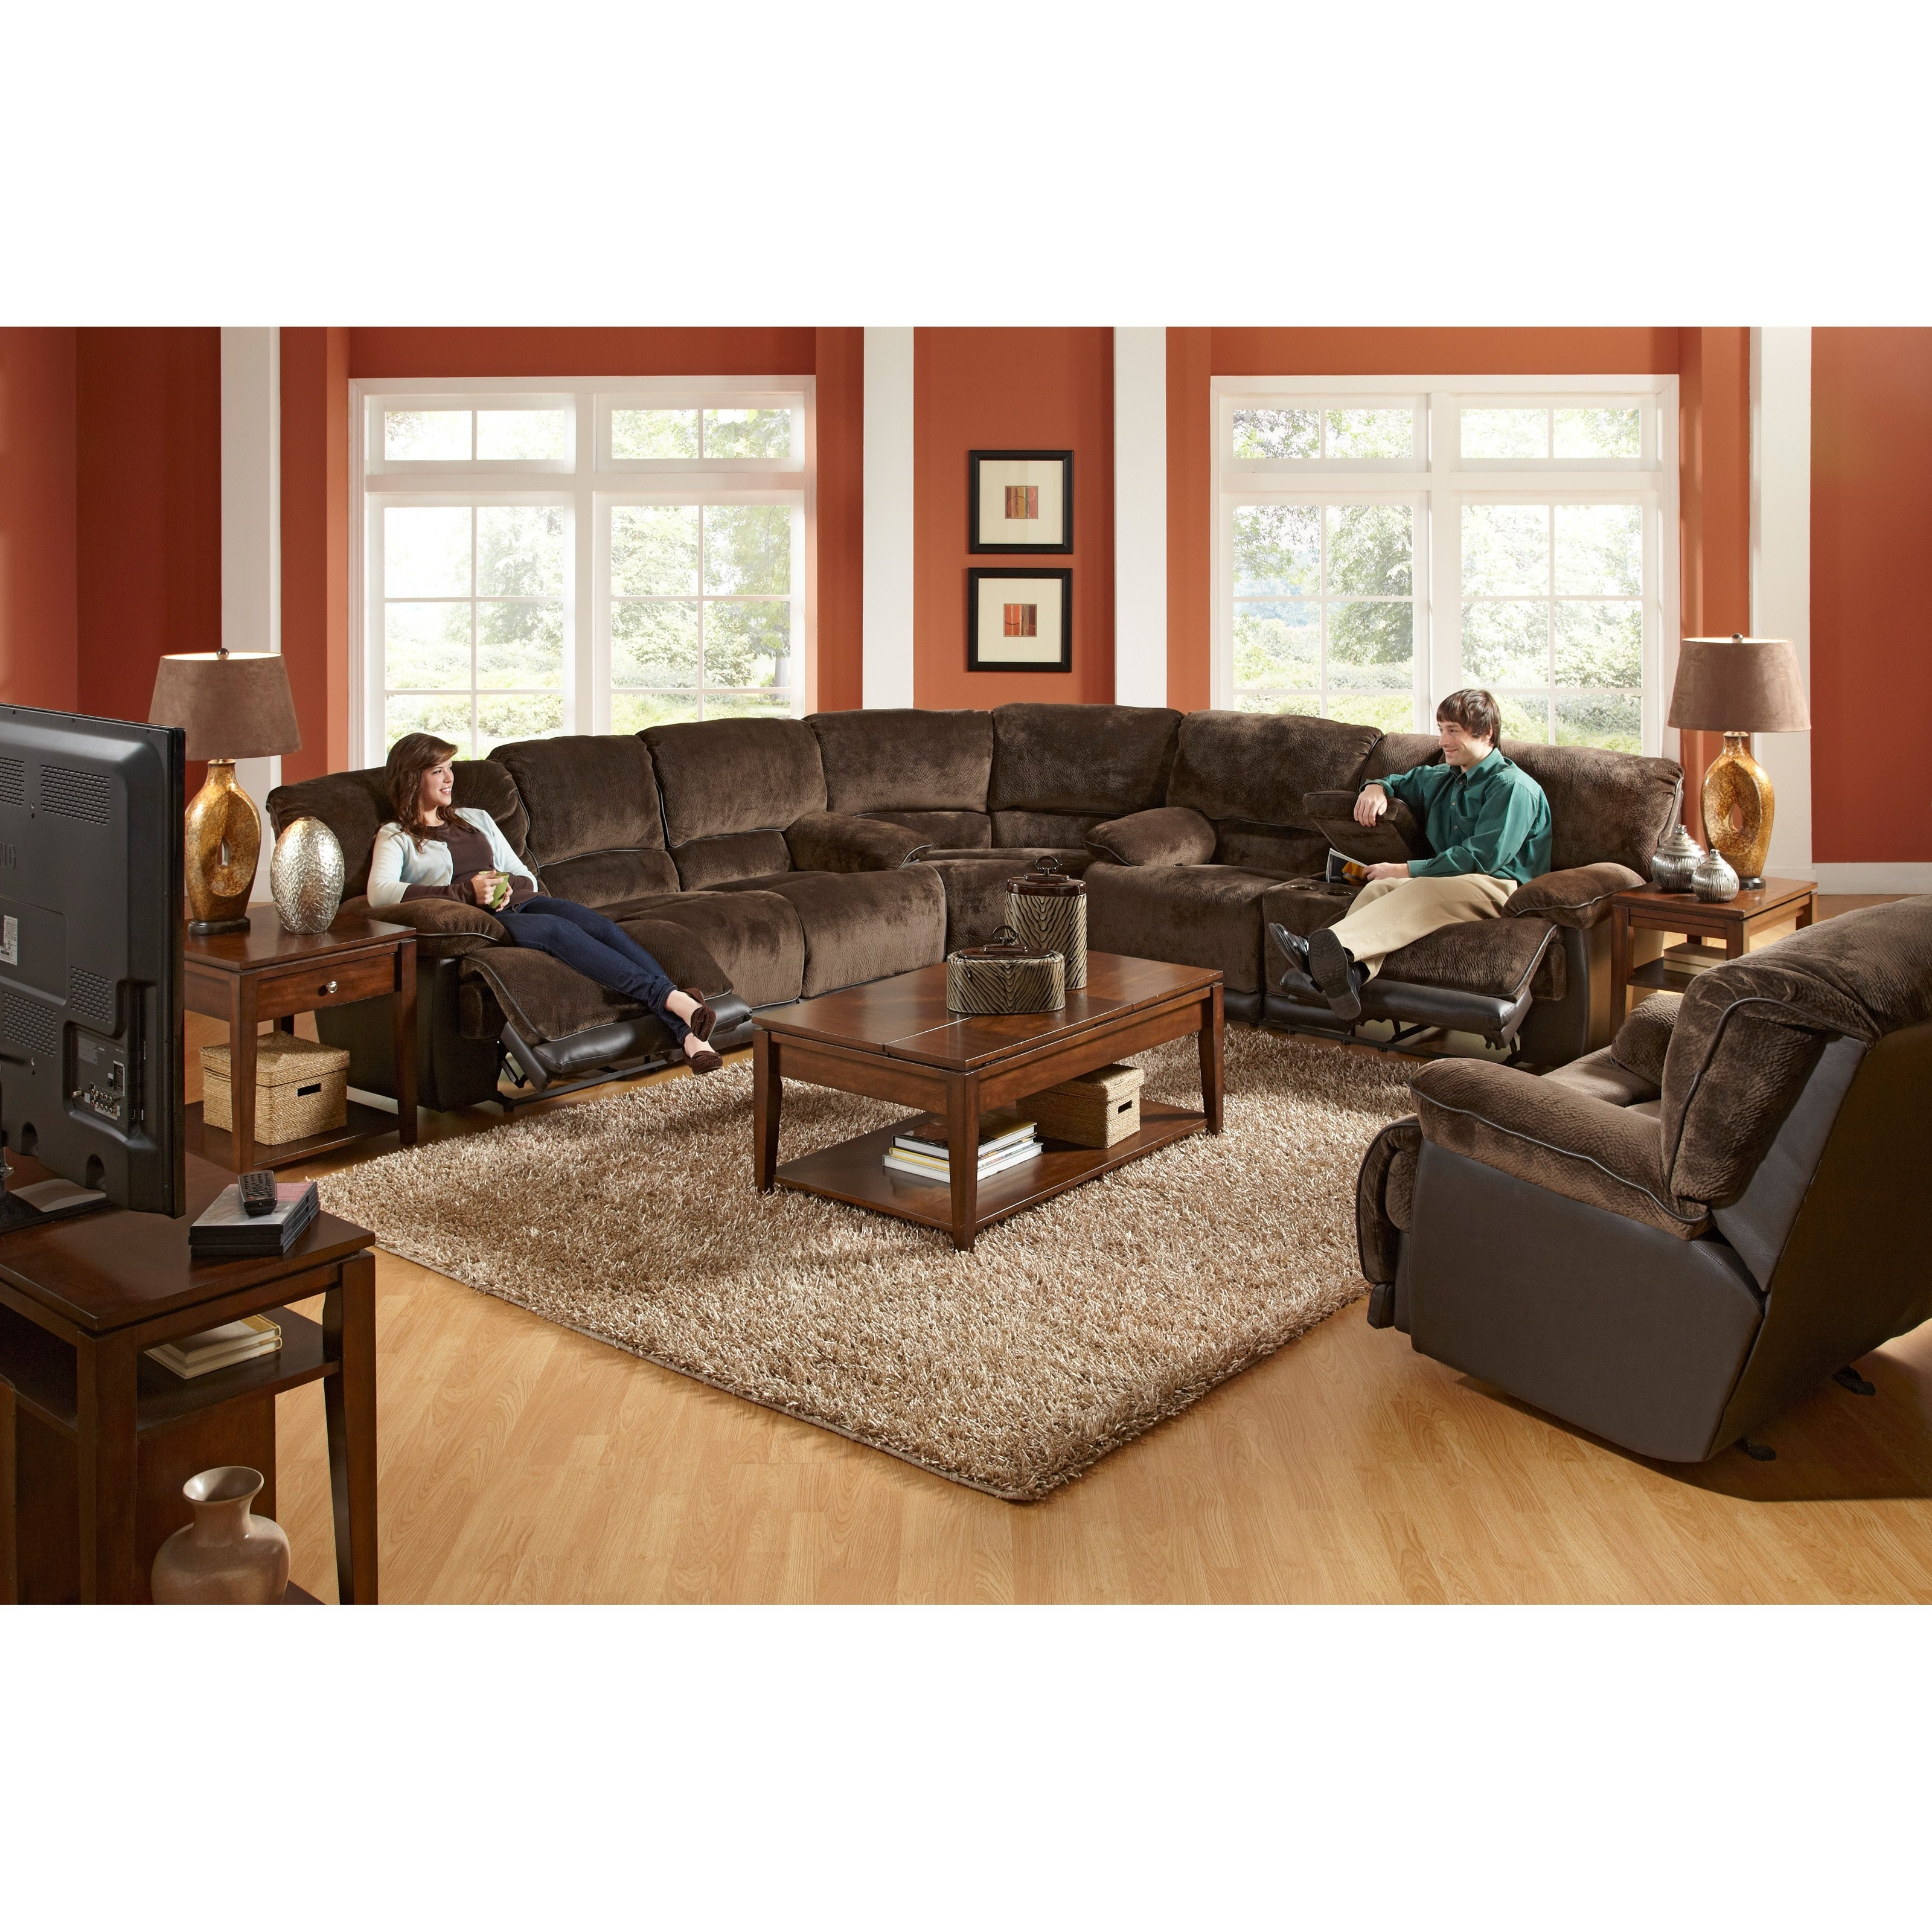 Catnapper Escalade Reclining Sectional - Chocolate - Walmart with regard to Jackson 6 Piece Power Reclining Sectionals (Image 8 of 30)